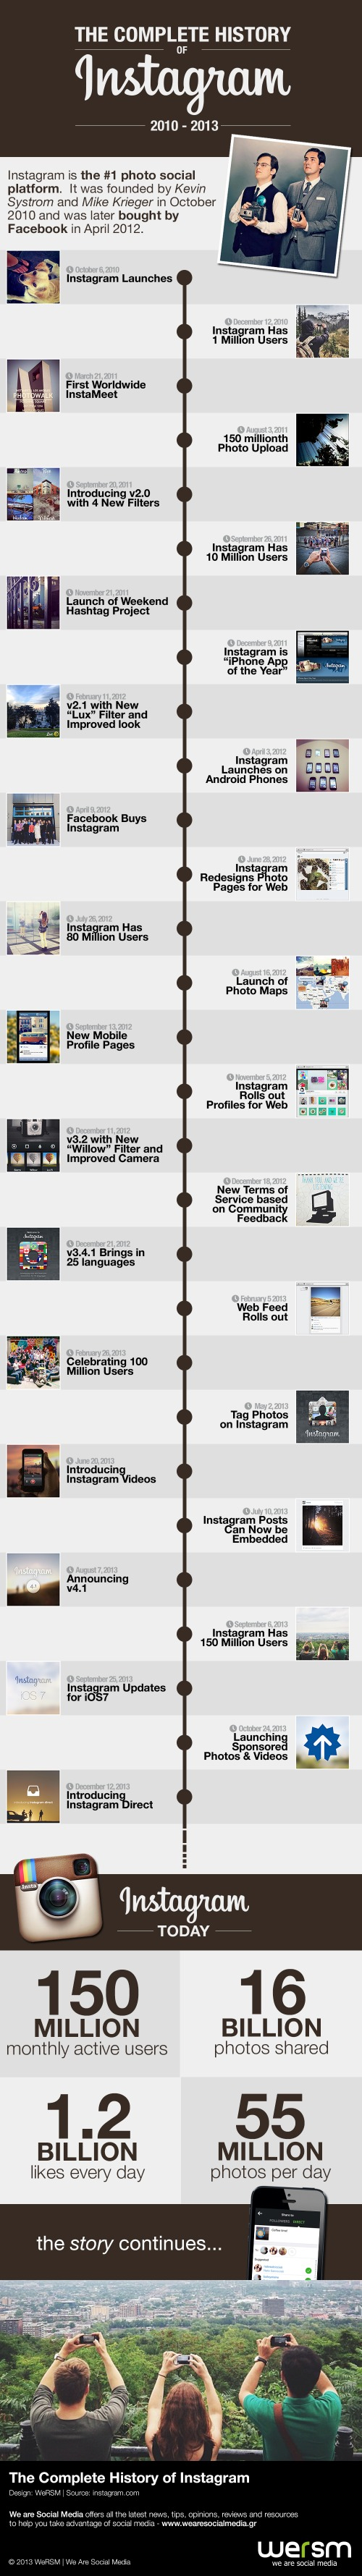 The Complete History of Instagram